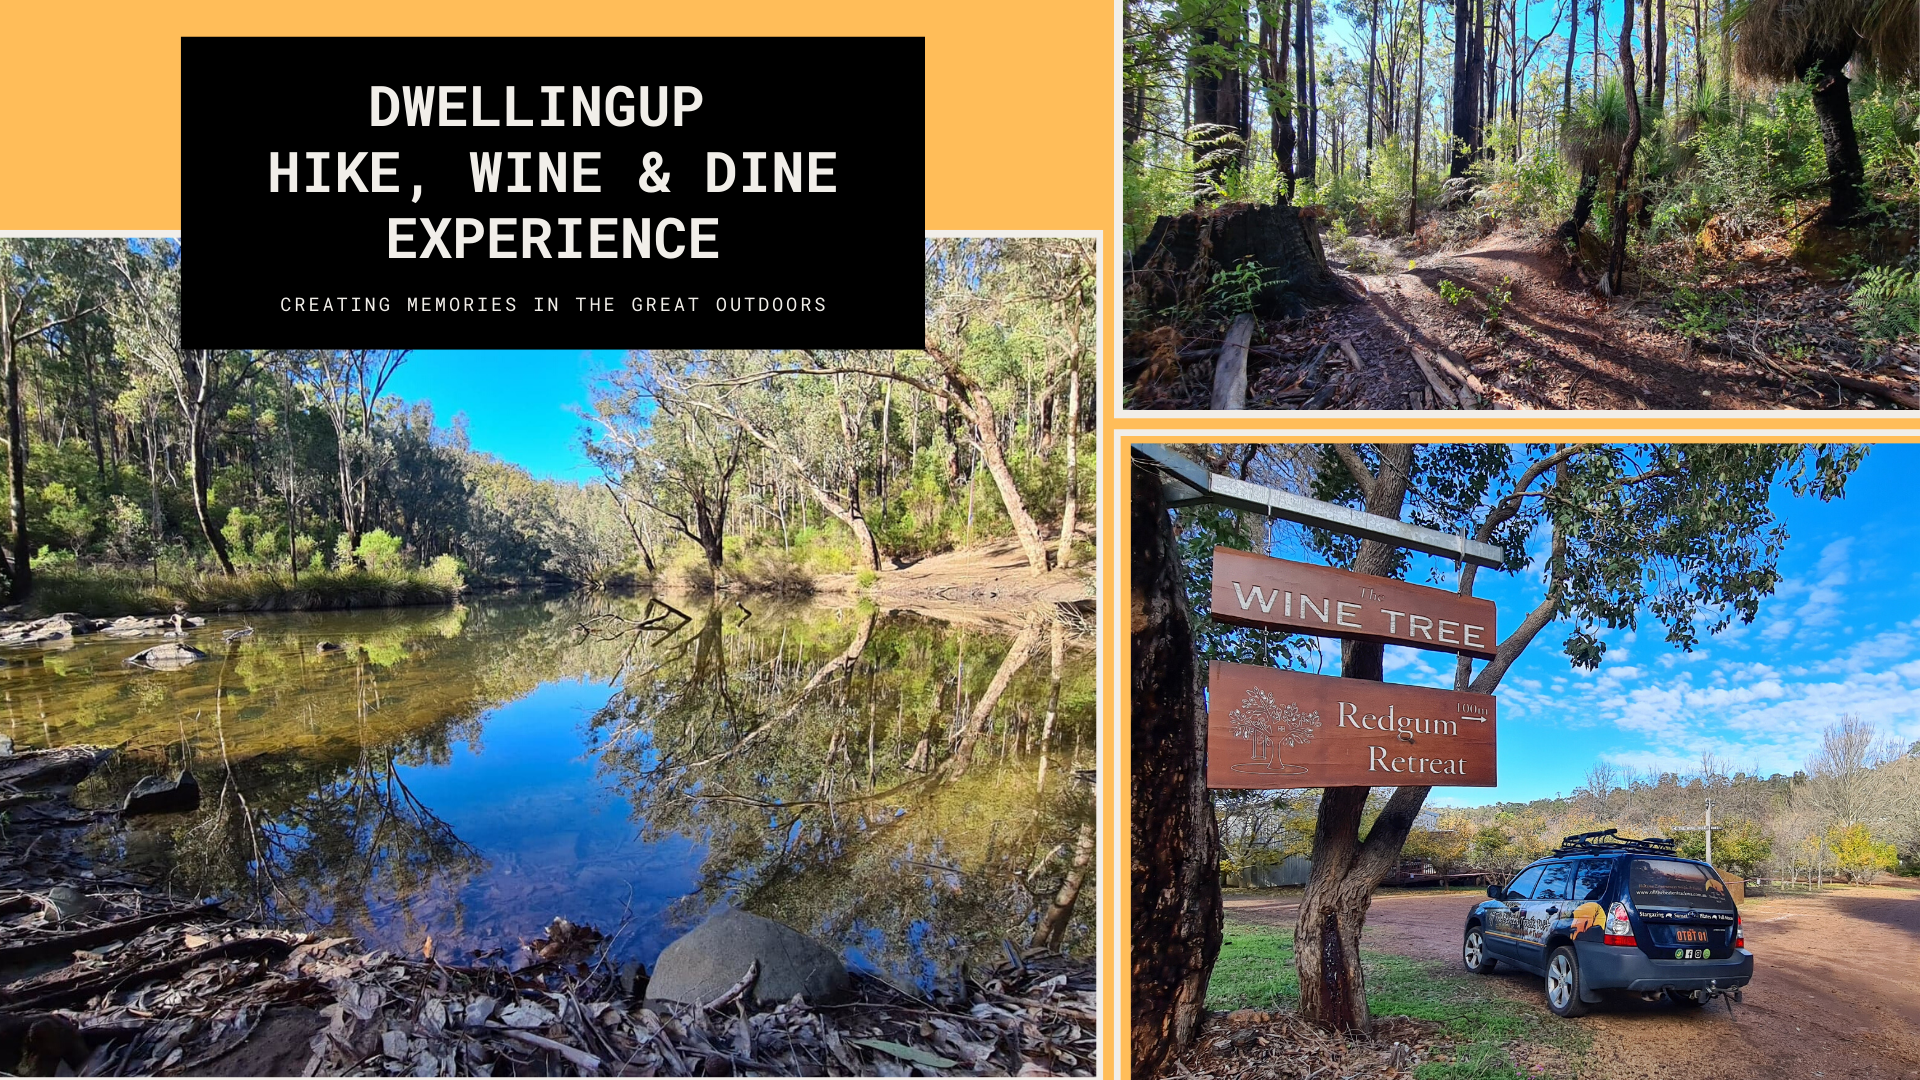 Dwellingup Hike Wine Dine Experience Web Event Cover